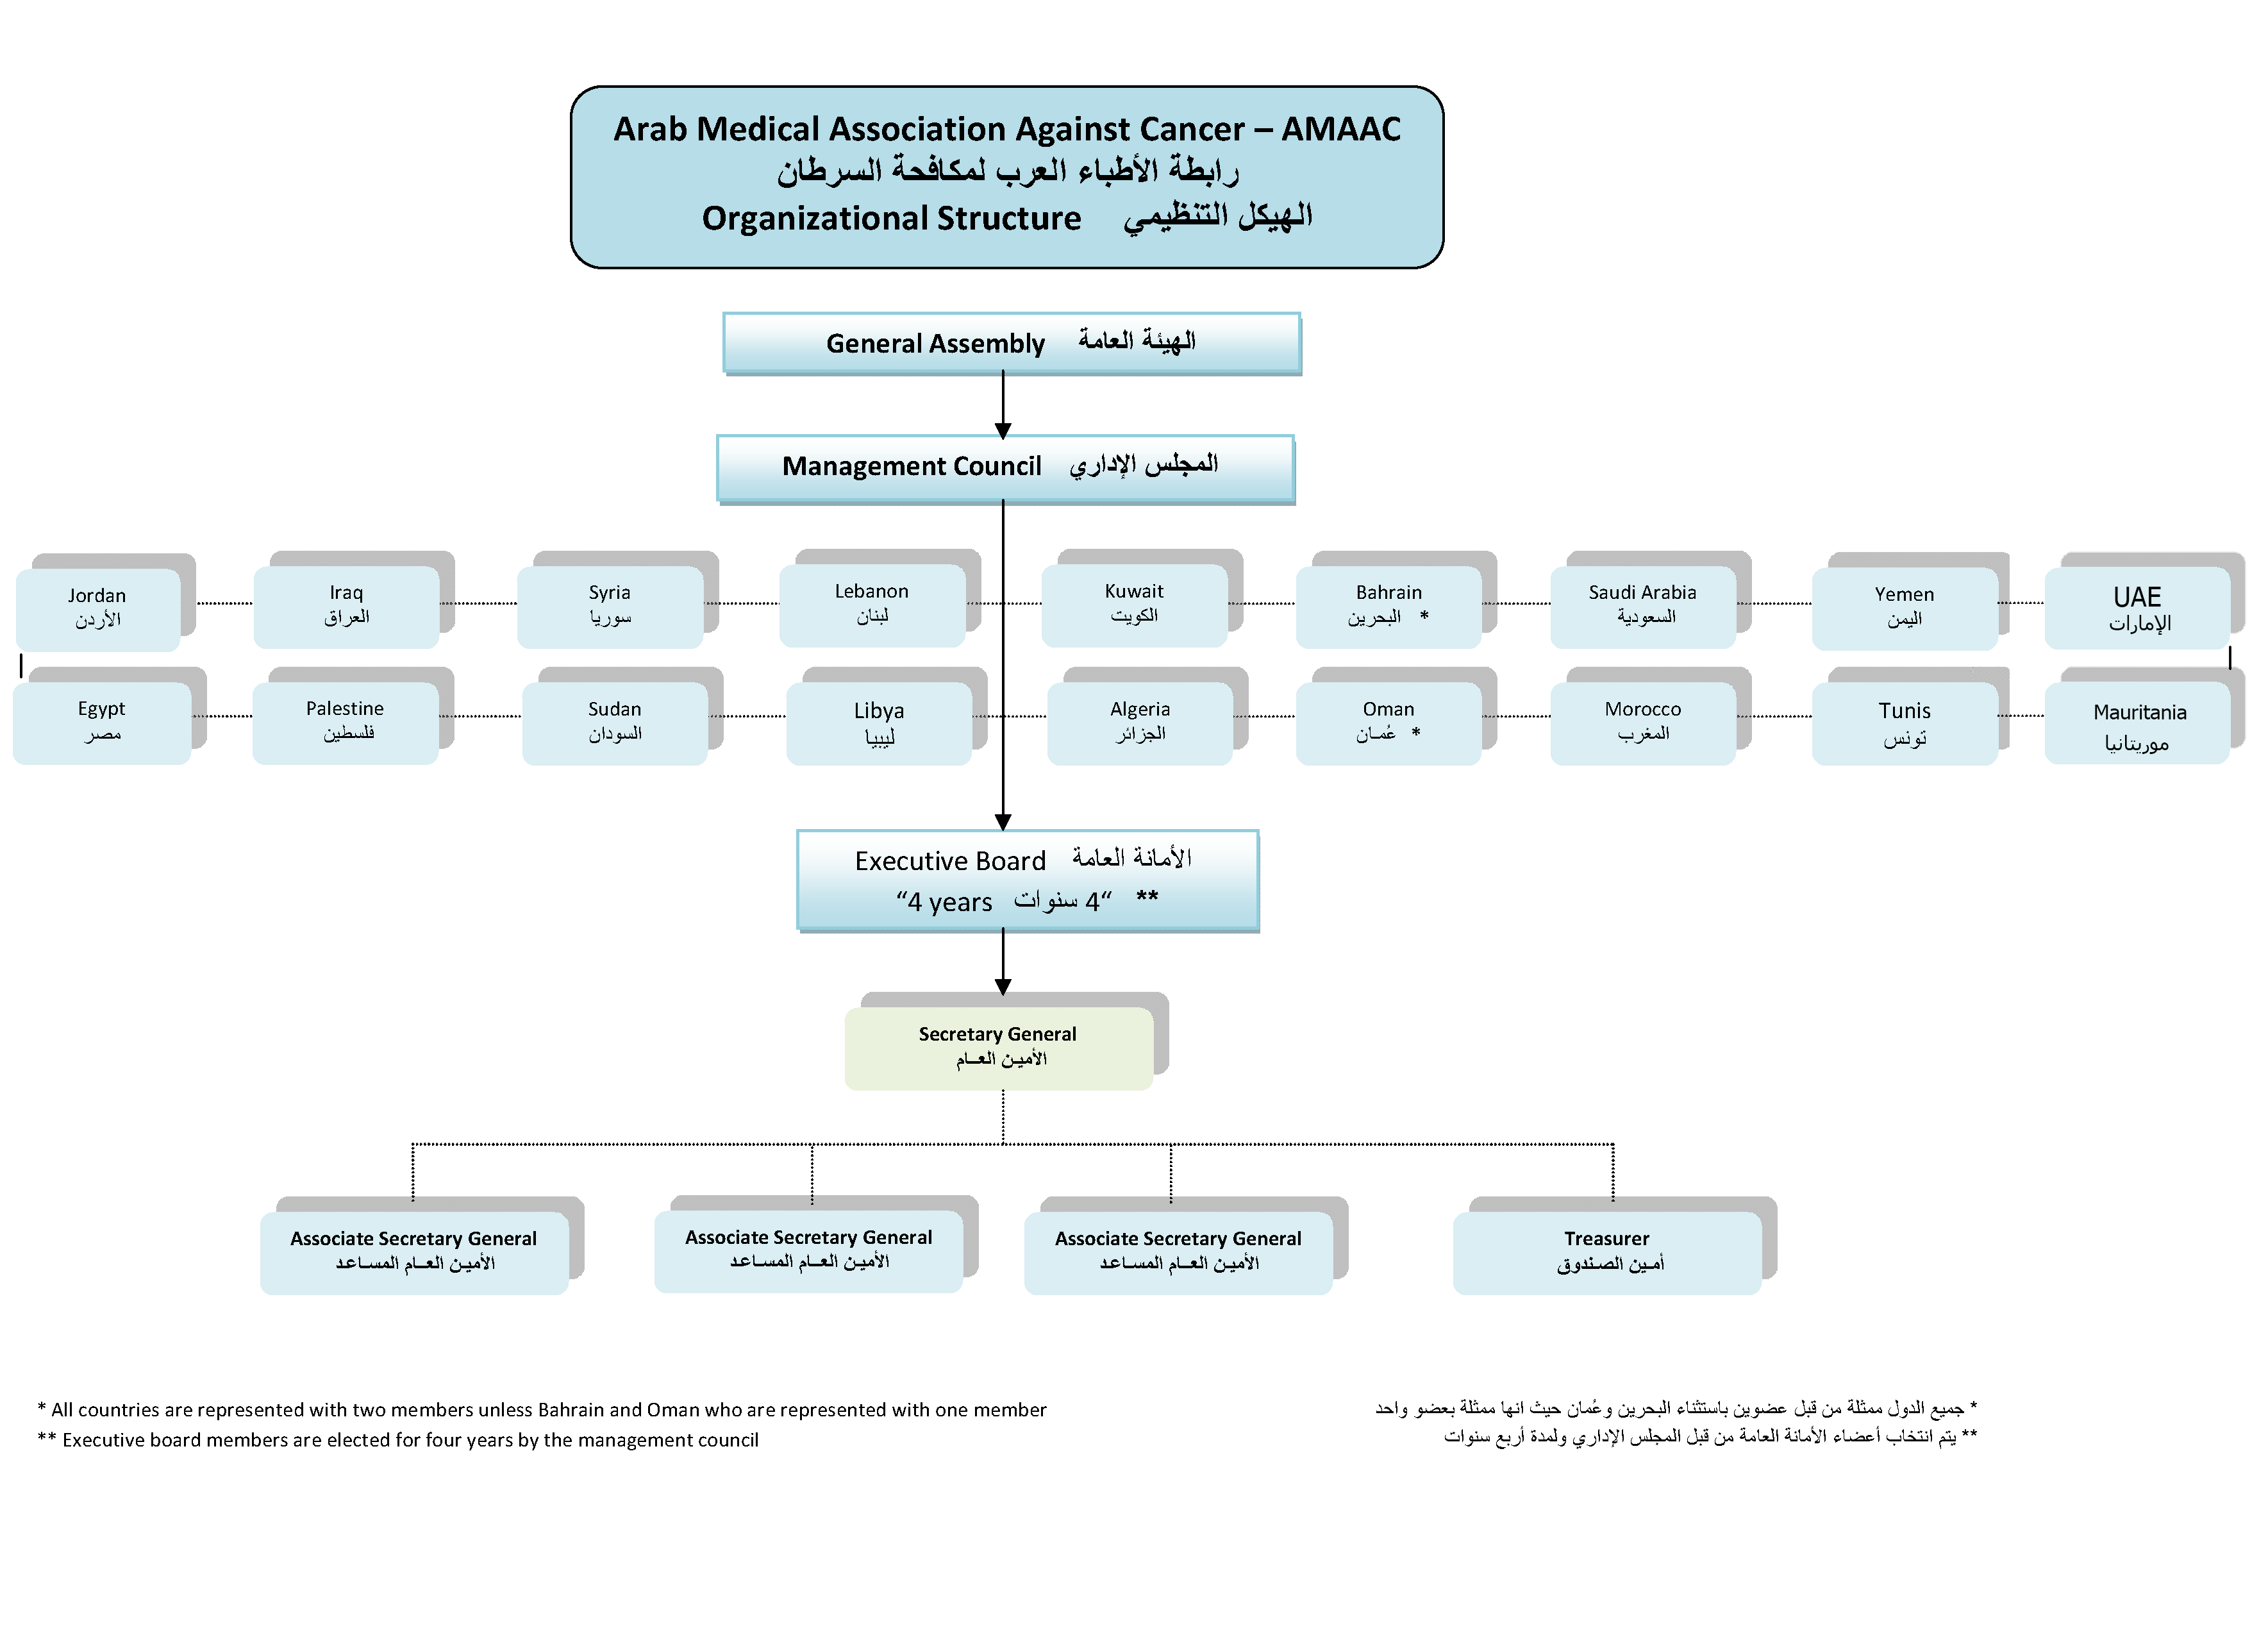 lidl organisational structure Furthermore, lidl should continue to open more stores in the uk in order to expand their presence and accessibility, which will allow their operations to have similar exposure to the other major supermarket retailers bibliography booms, b h & bitner, m j, 1981 marketing strategies and organization structures for service firms.